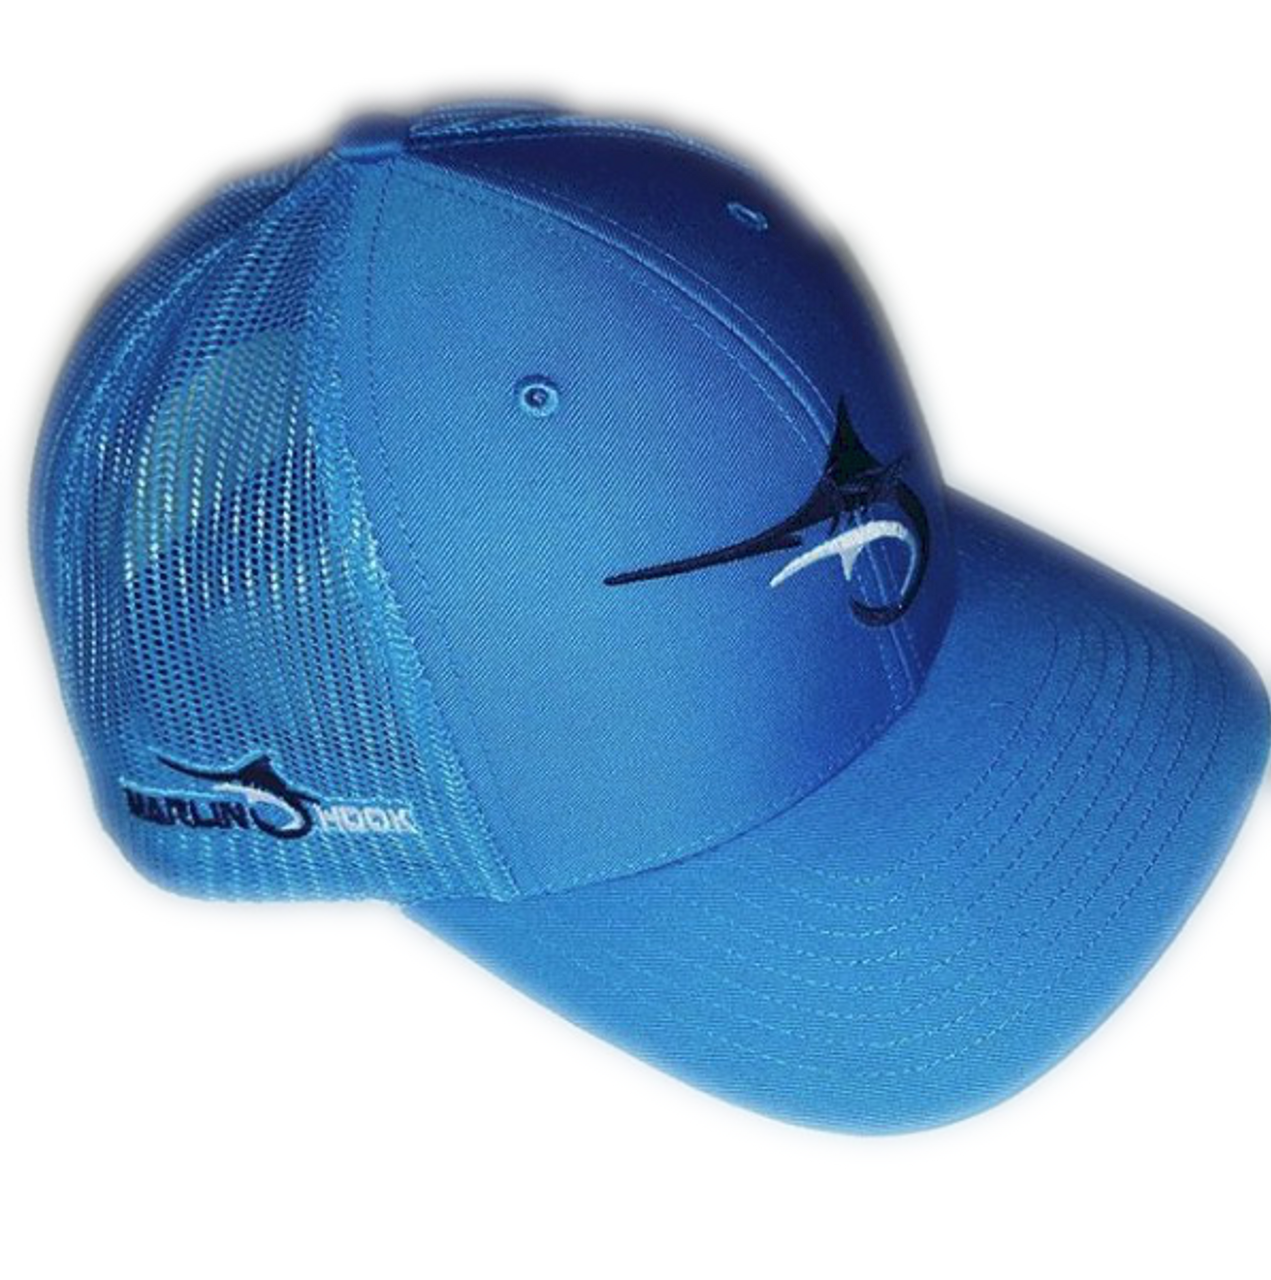 969929ab14dca Marlin Hook Trucker Hat - Symbol - All Royal - Alltackle.com